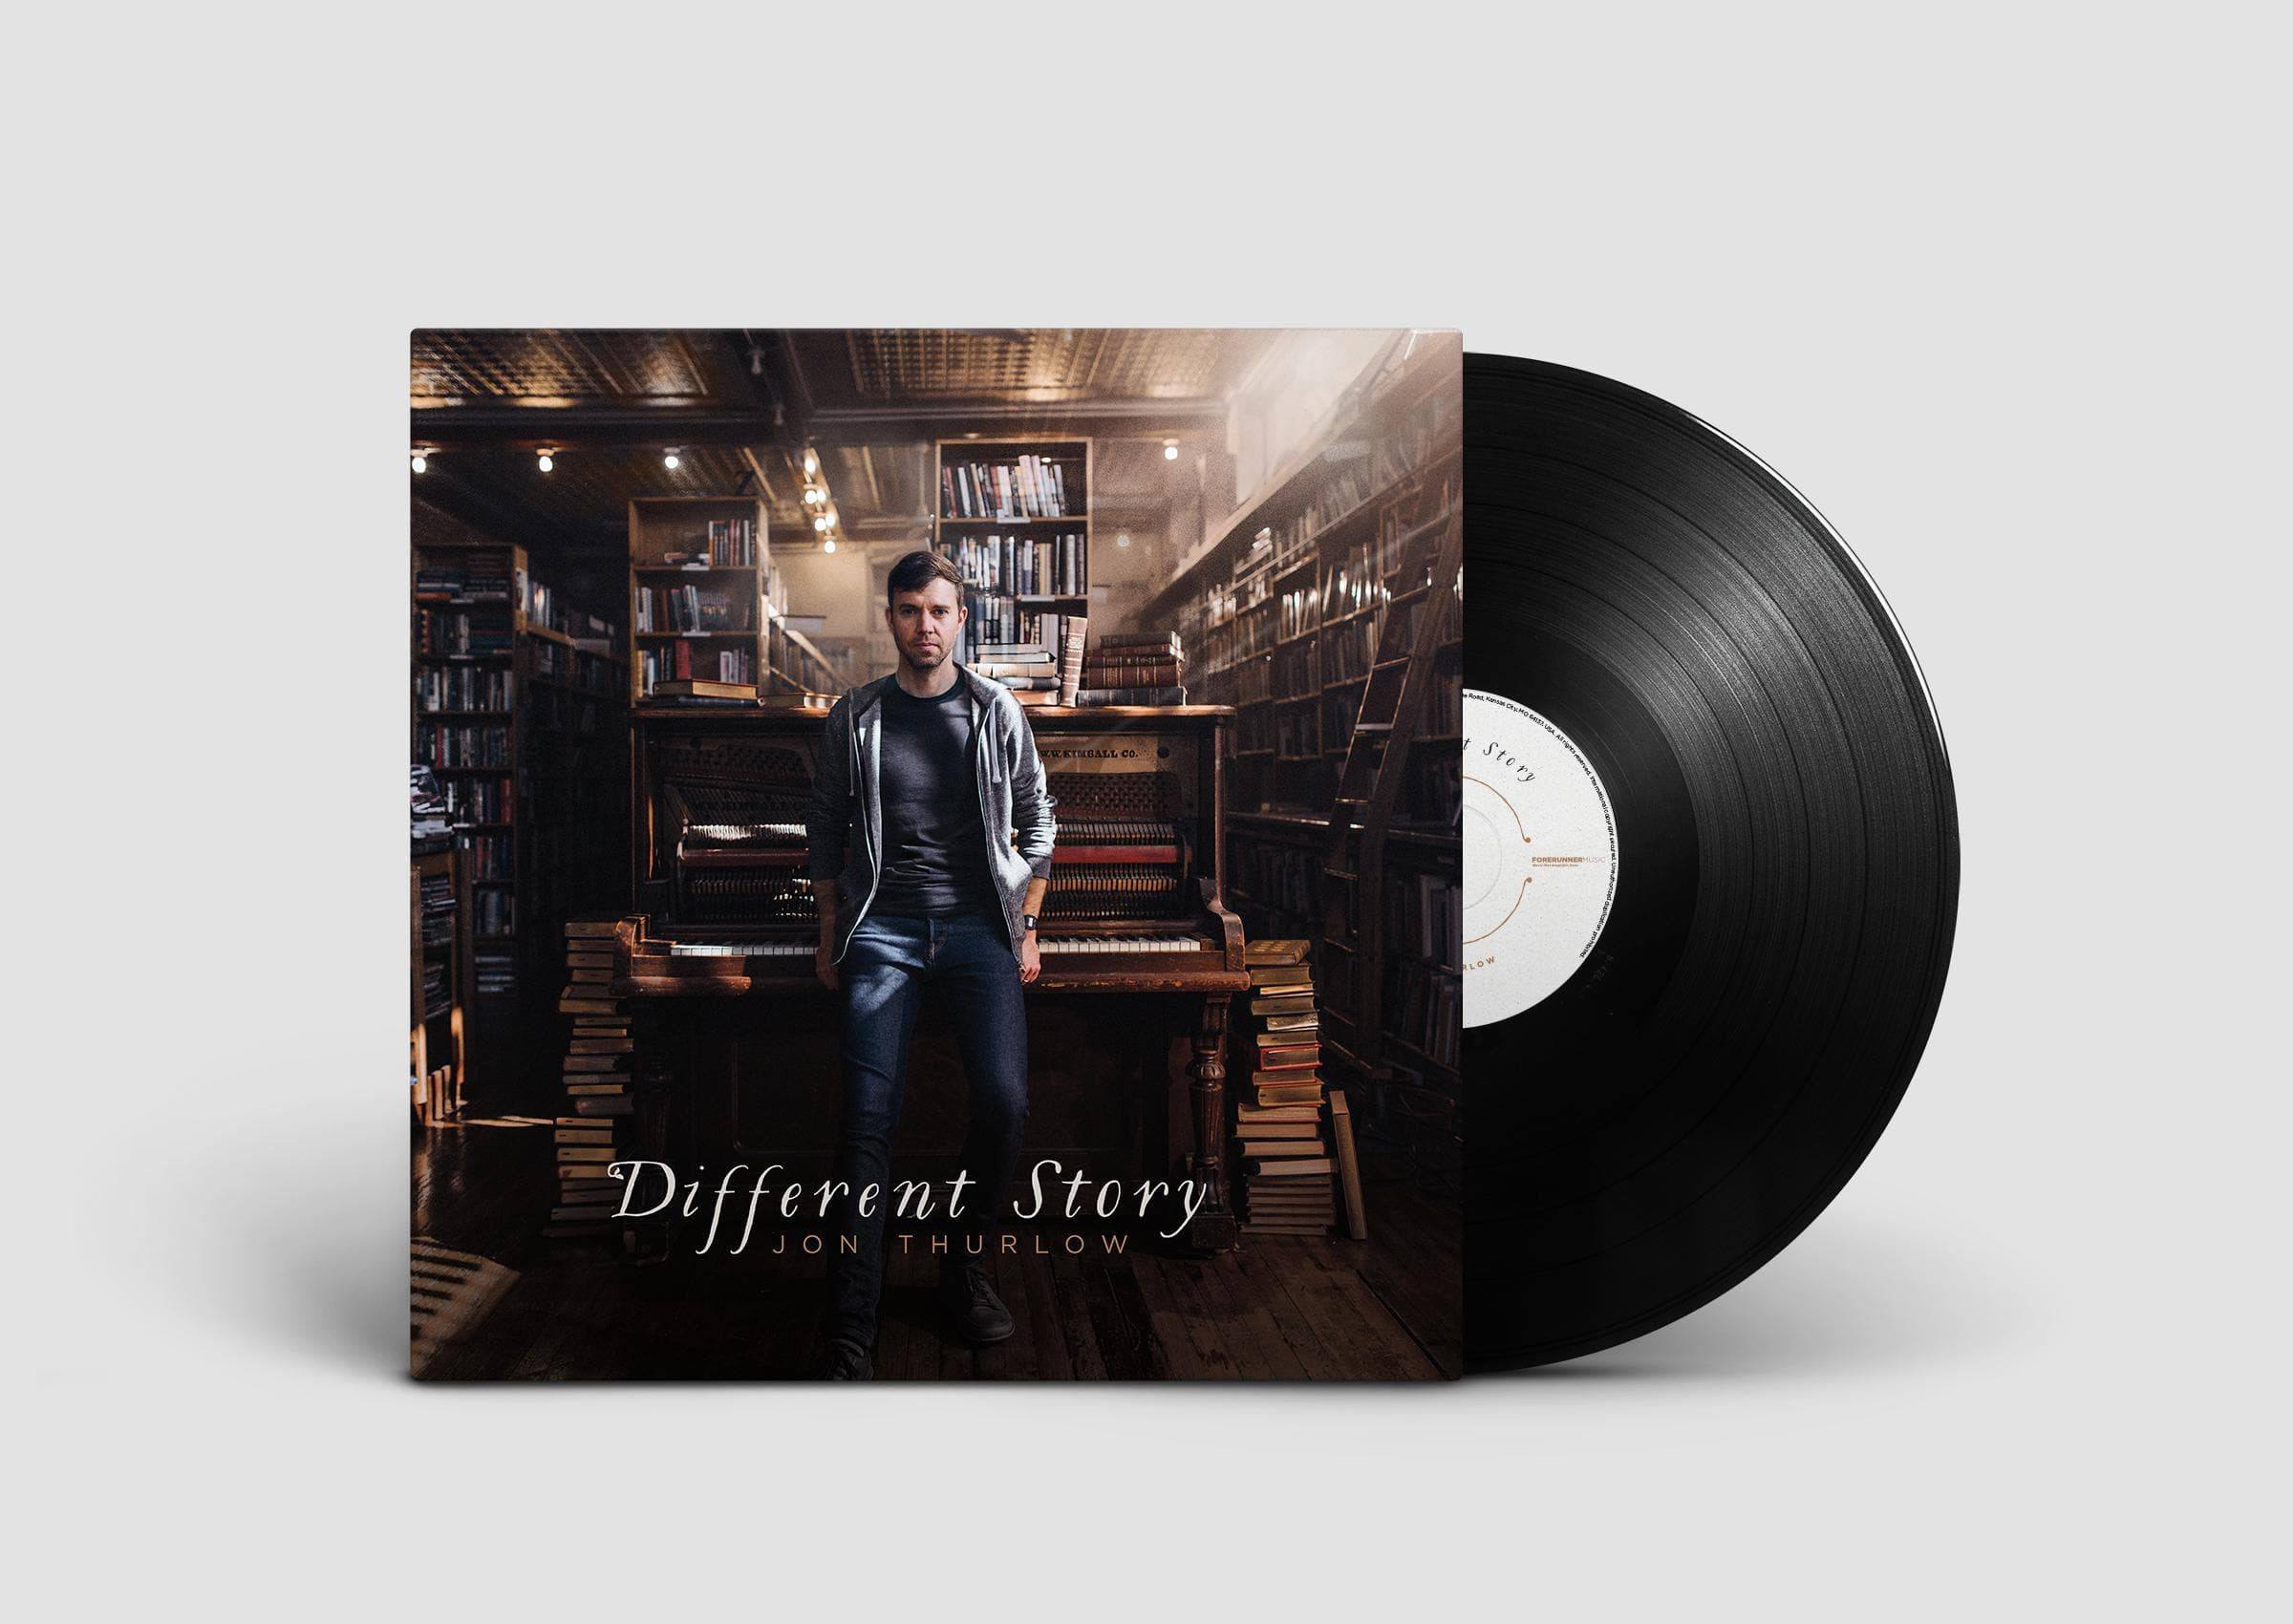 Different Story - Music - Thurlow, Jon - Forerunner Bookstore Online Store